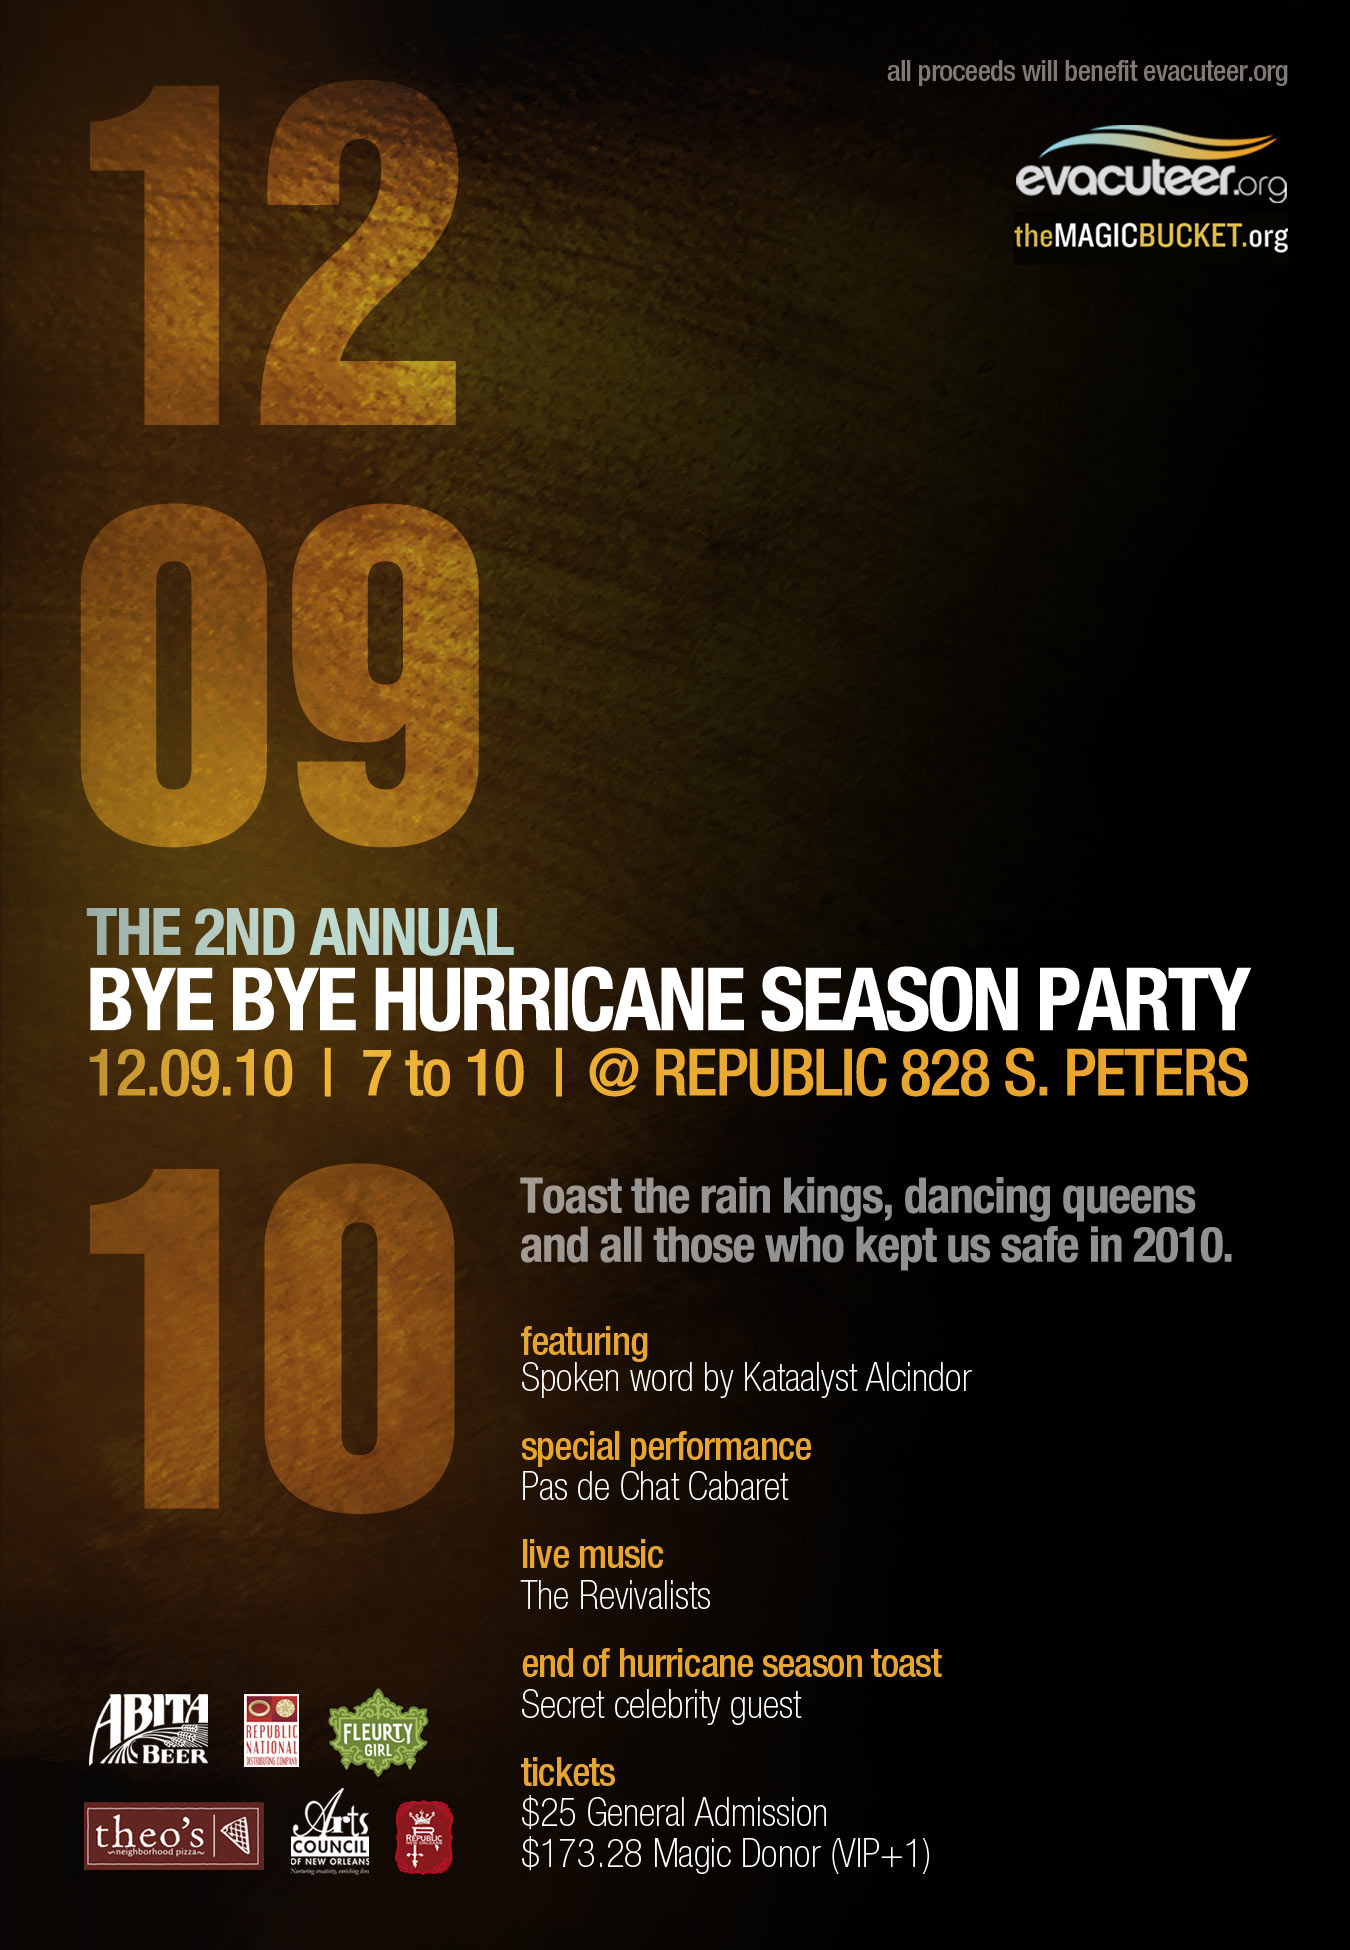 12/9/2010 Bye Bye Hurricane Season Party